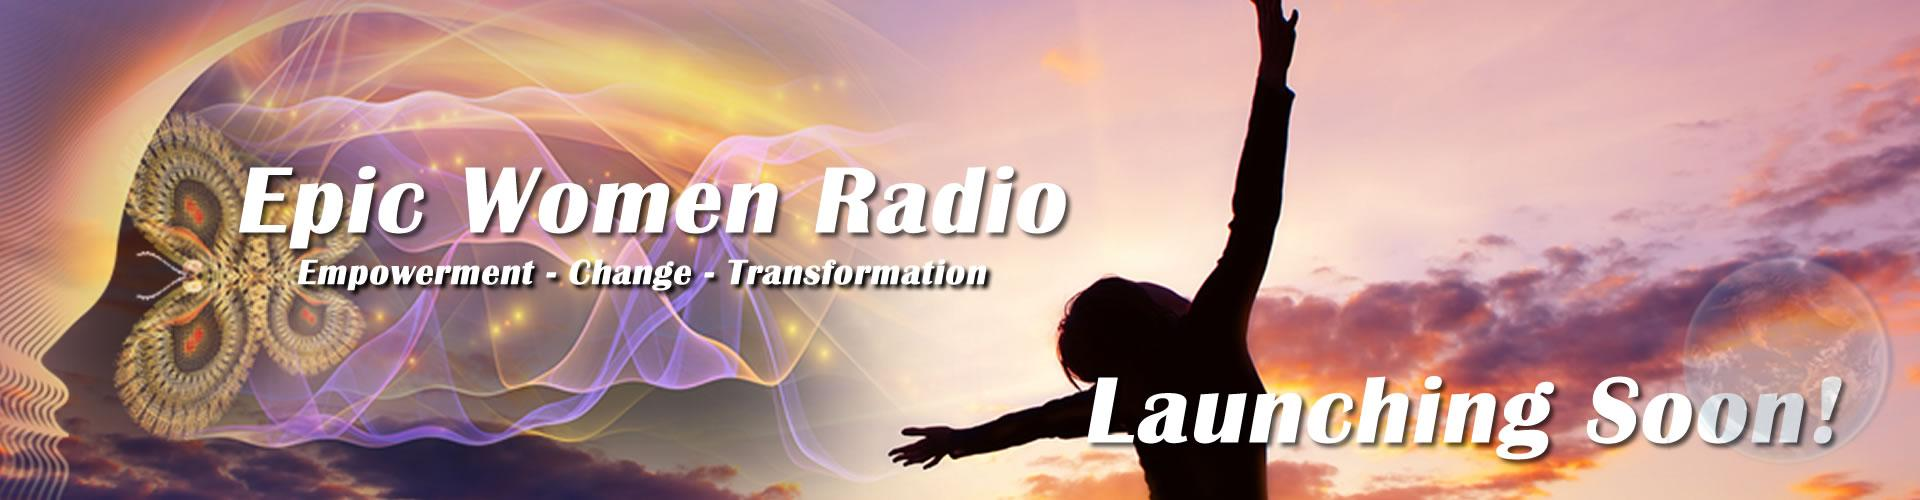 Epic Women Radio - The Transformation Network